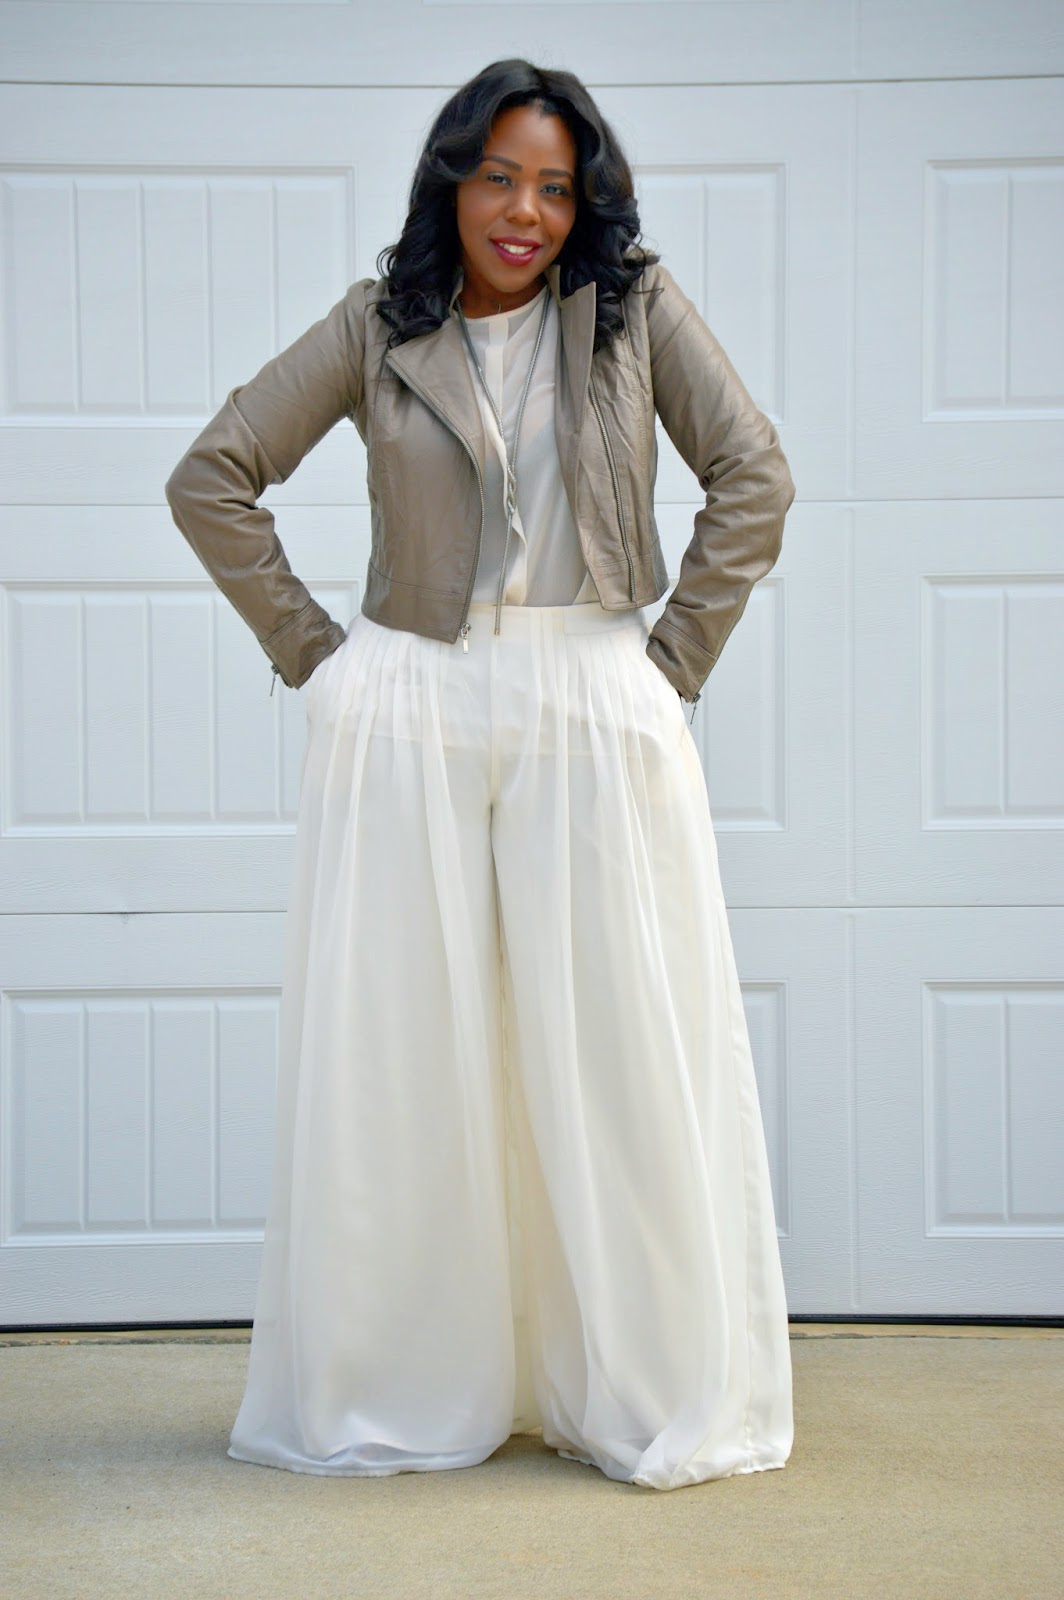 Palazzo Pants Outfit Palazzo pants in winter white